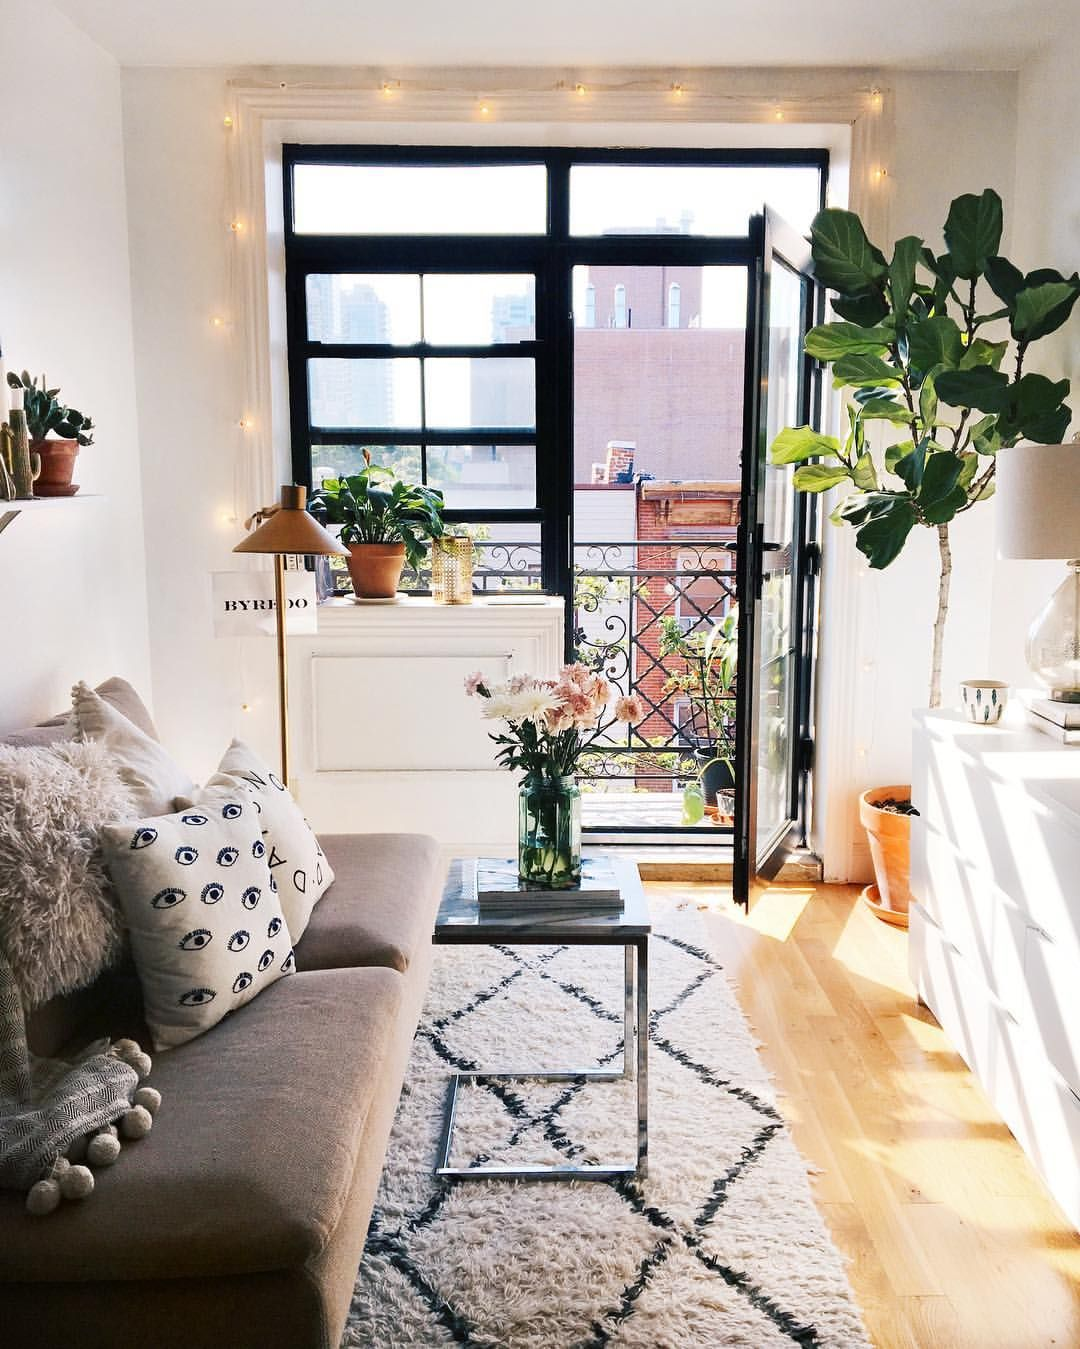 Pin von Rebekah Spies auf Welcome To My House | Pinterest ...